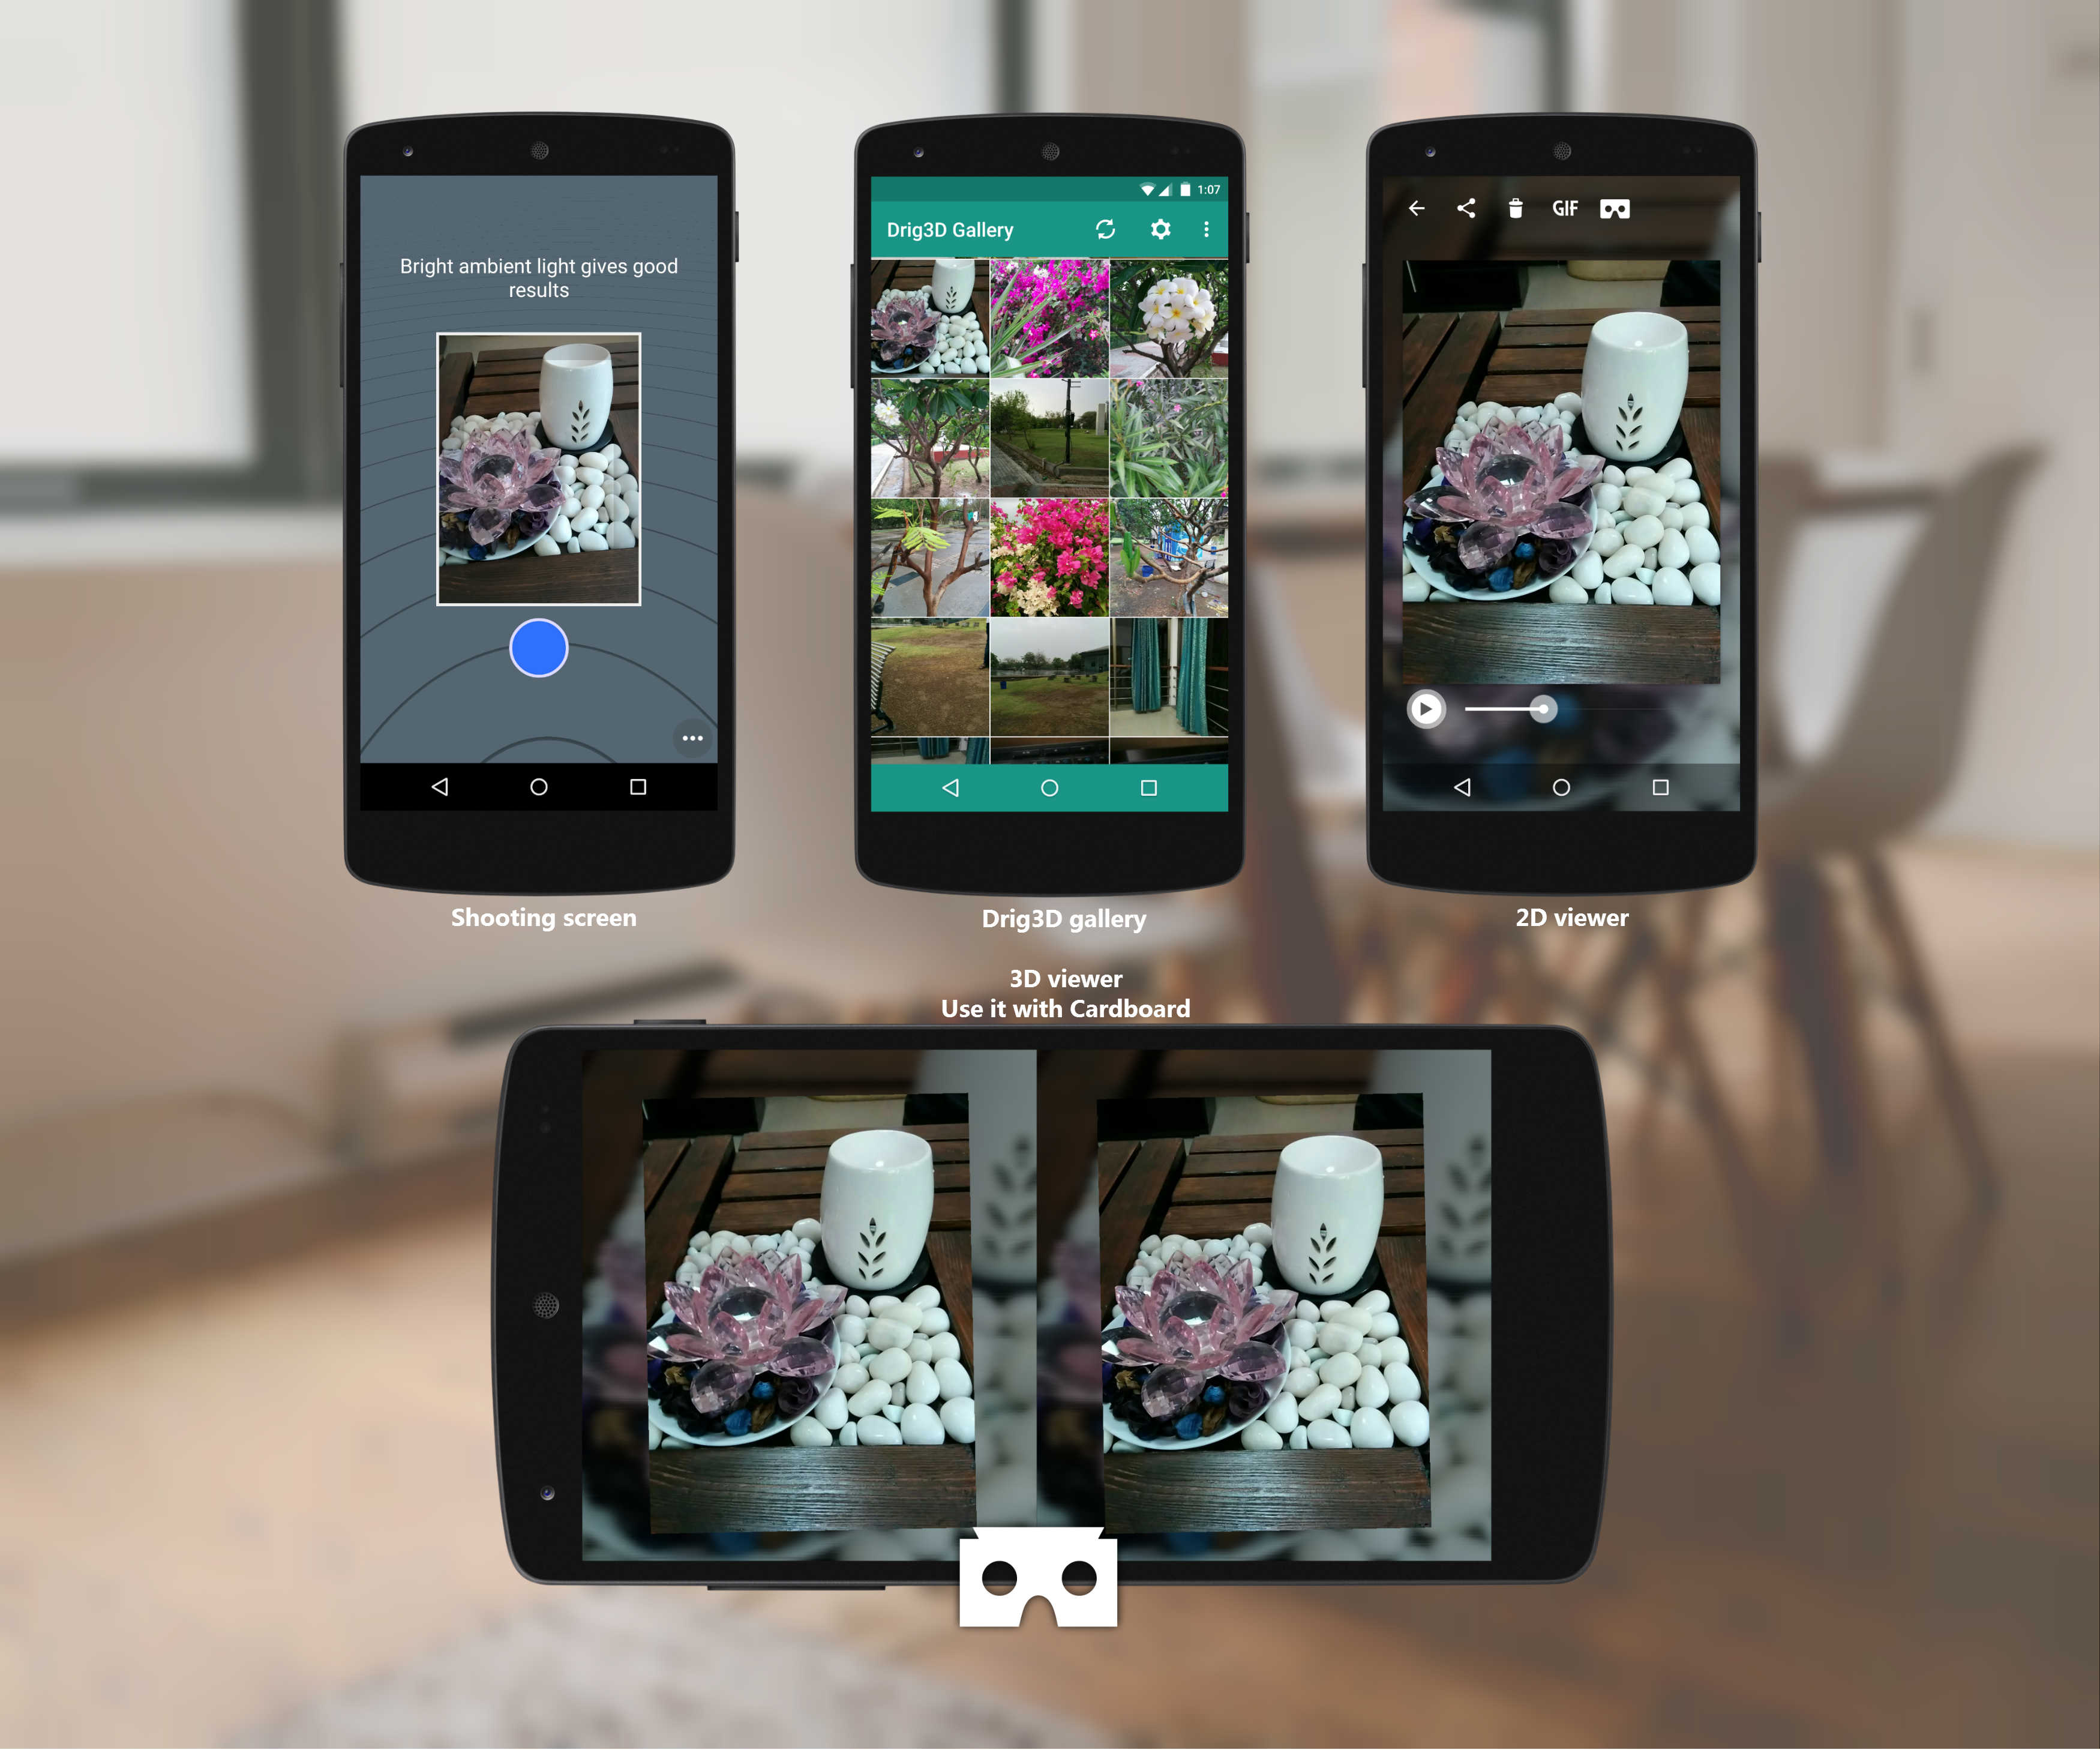 12df808cee92 Dwaravati Launched 3D Camera App That Works With Google Cardboard ...